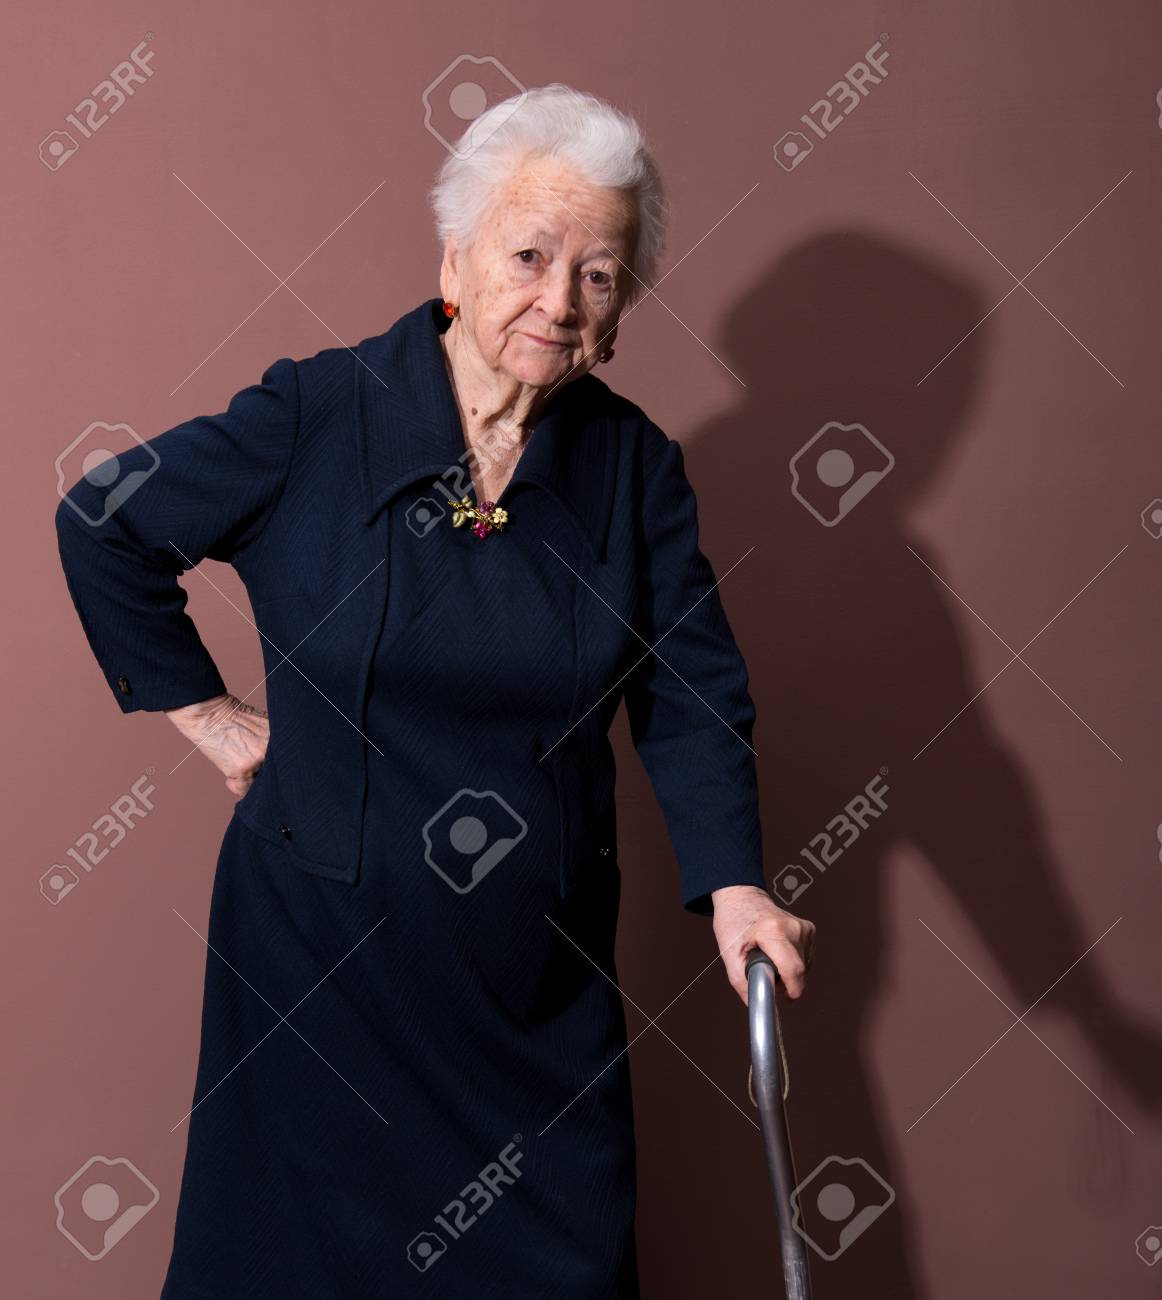 Old woman with a cane on brown background Stock Photo - 18442258